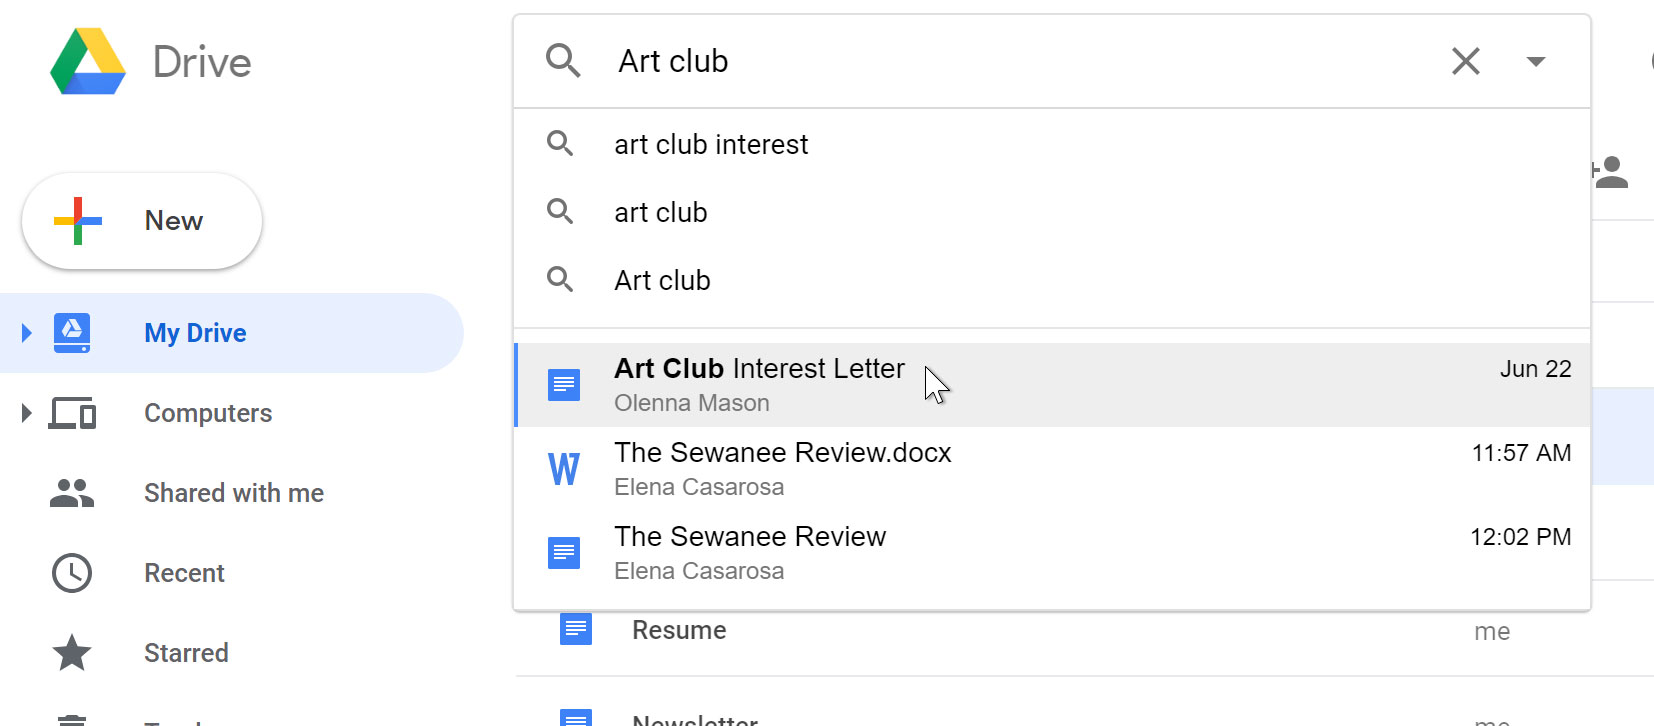 searching for art club files